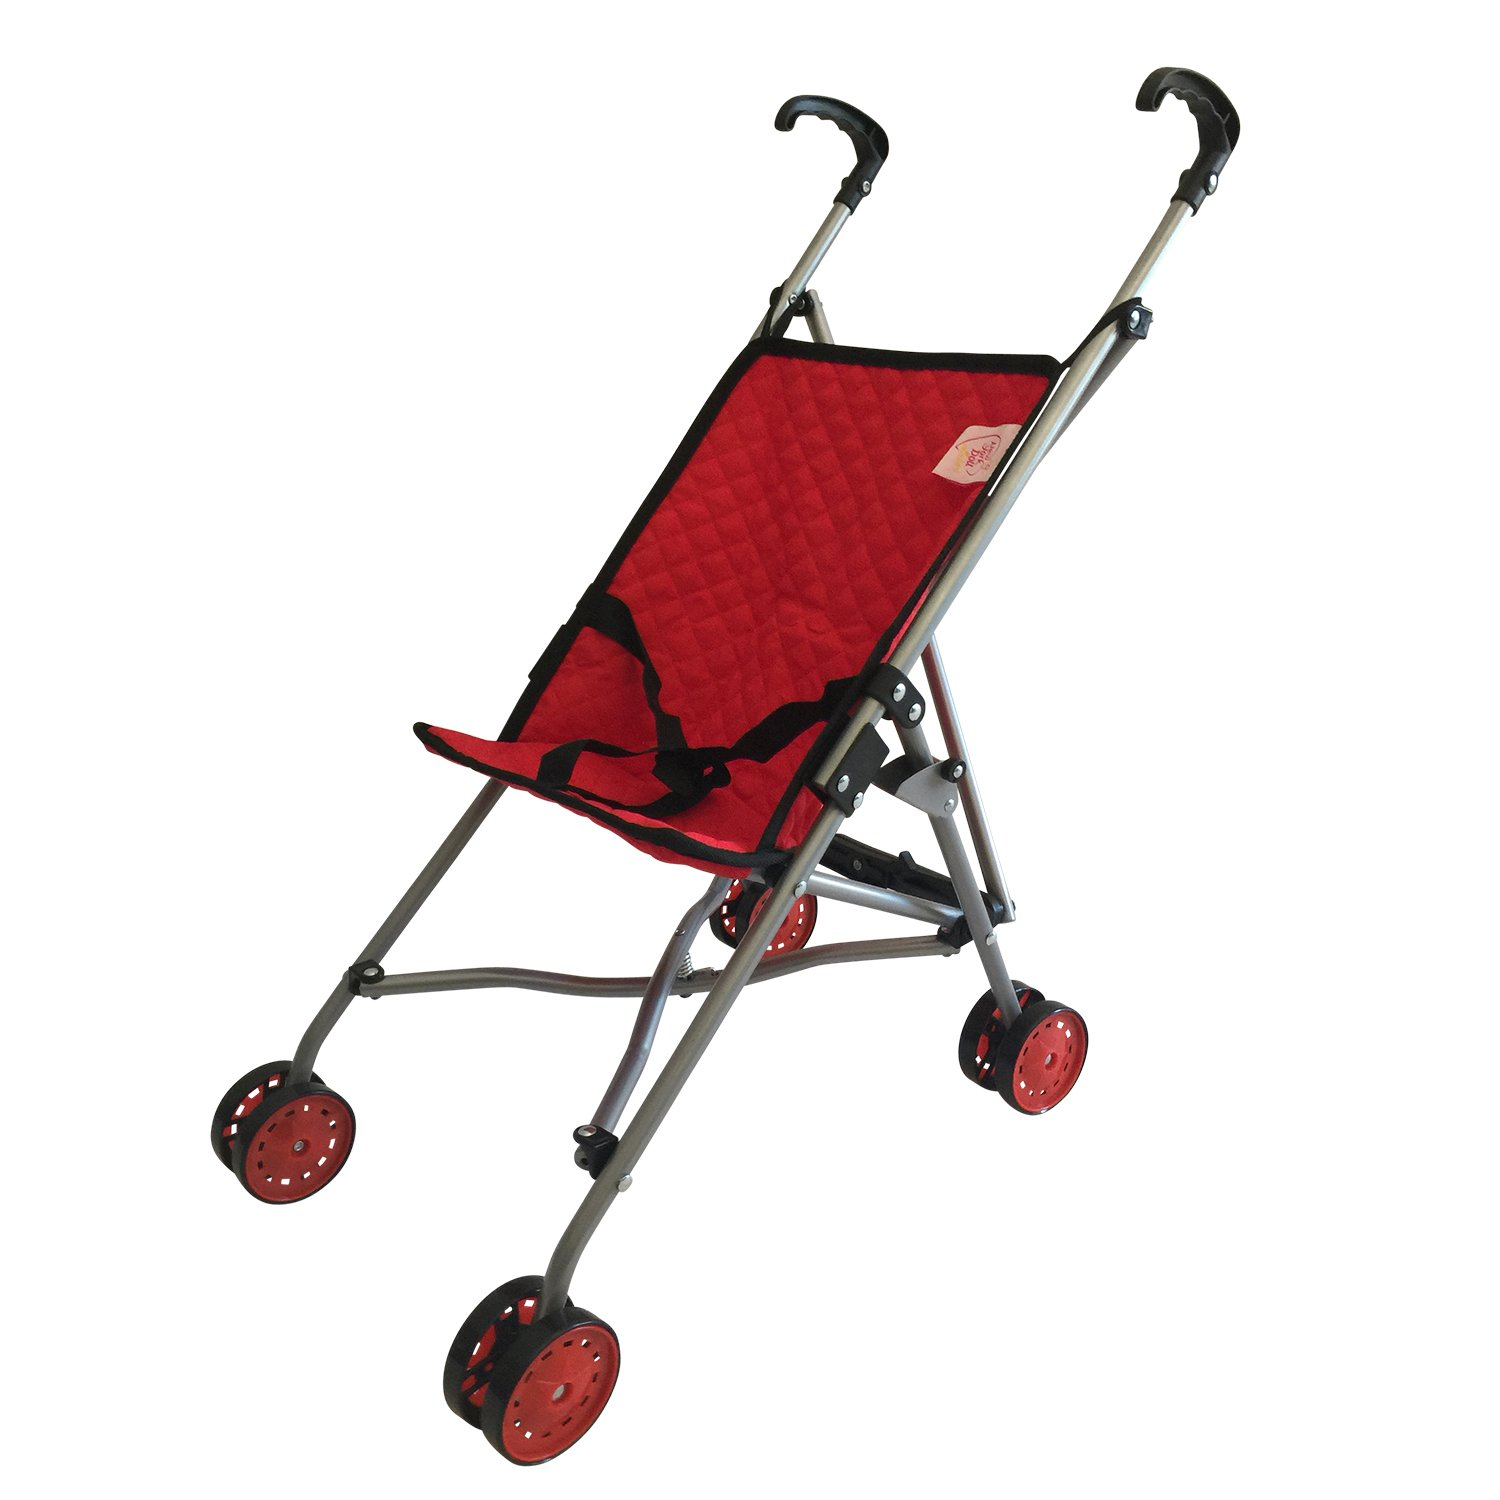 My First Doll Stroller for Kids - Super Cute Doll Stroller for Girls - SUPERIOR QUALITY Red Quilted Fabric- NEW LUXURY COLLECTION - Doll Stroller Folds for Storage - Great Gift for Toddlers by The New York Doll Collection   B01KVUP4J0